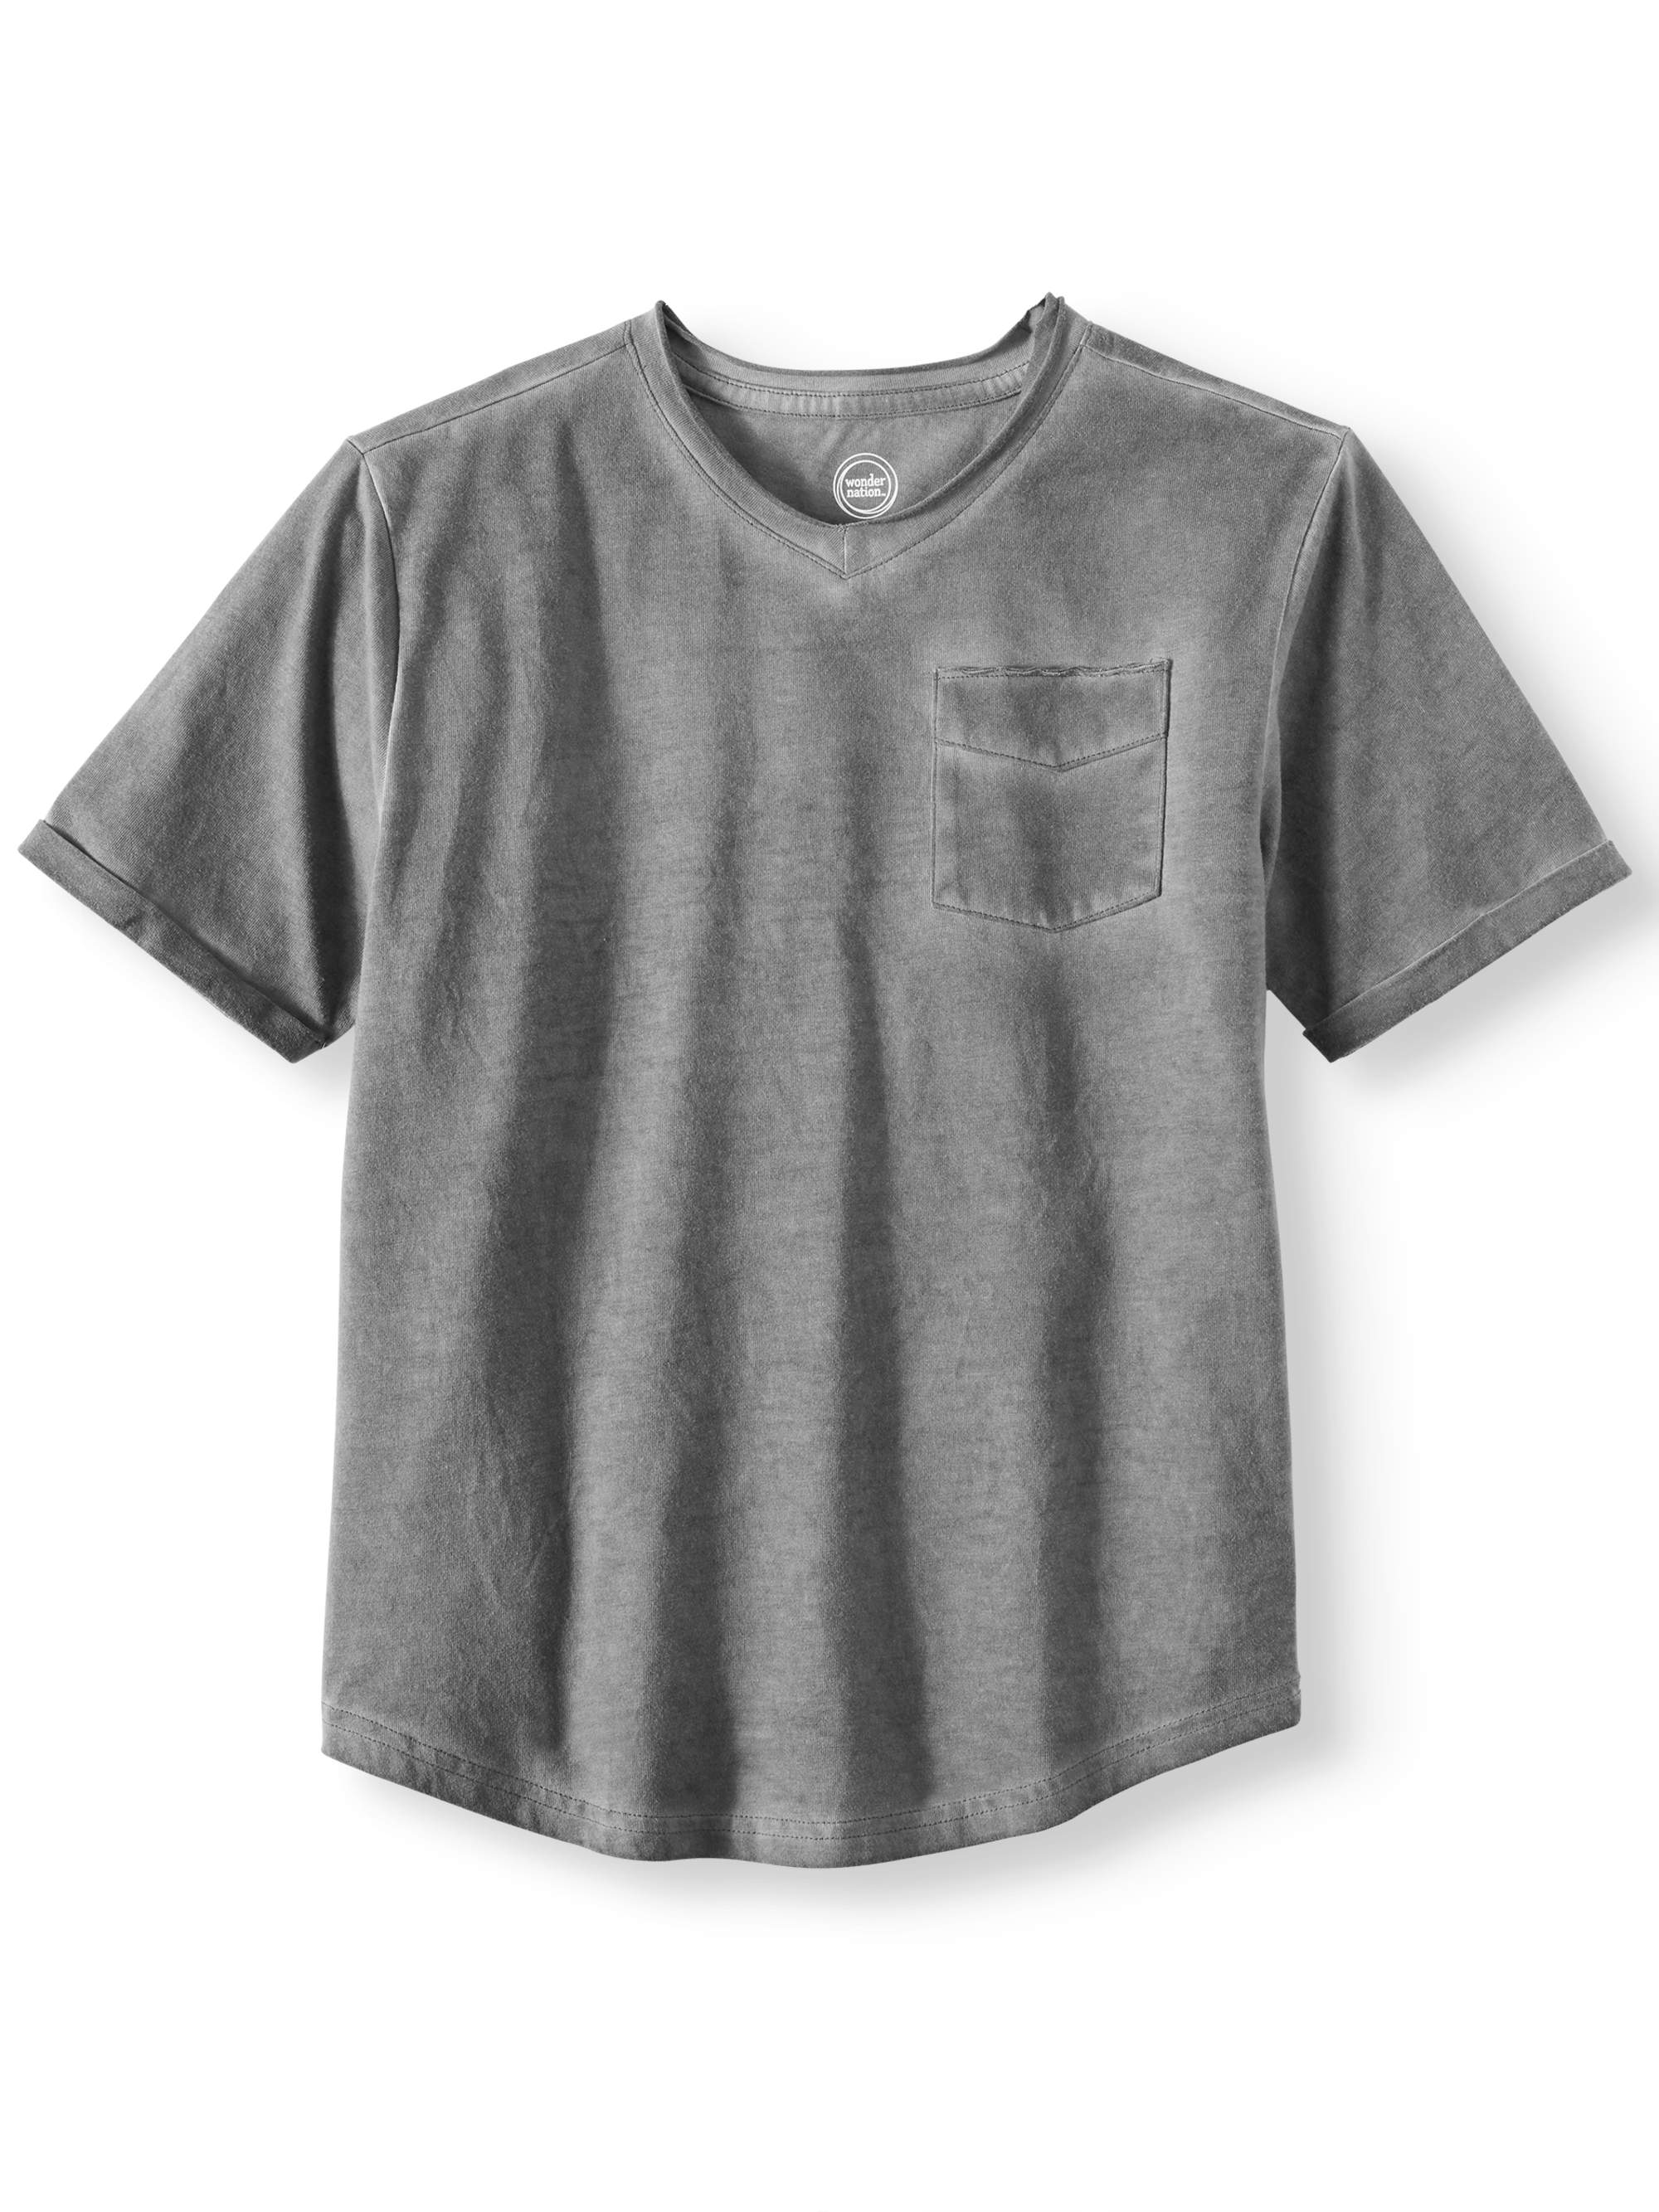 Fashion Solid Knit V-Neck Tee (Little Boys & Big Boys)